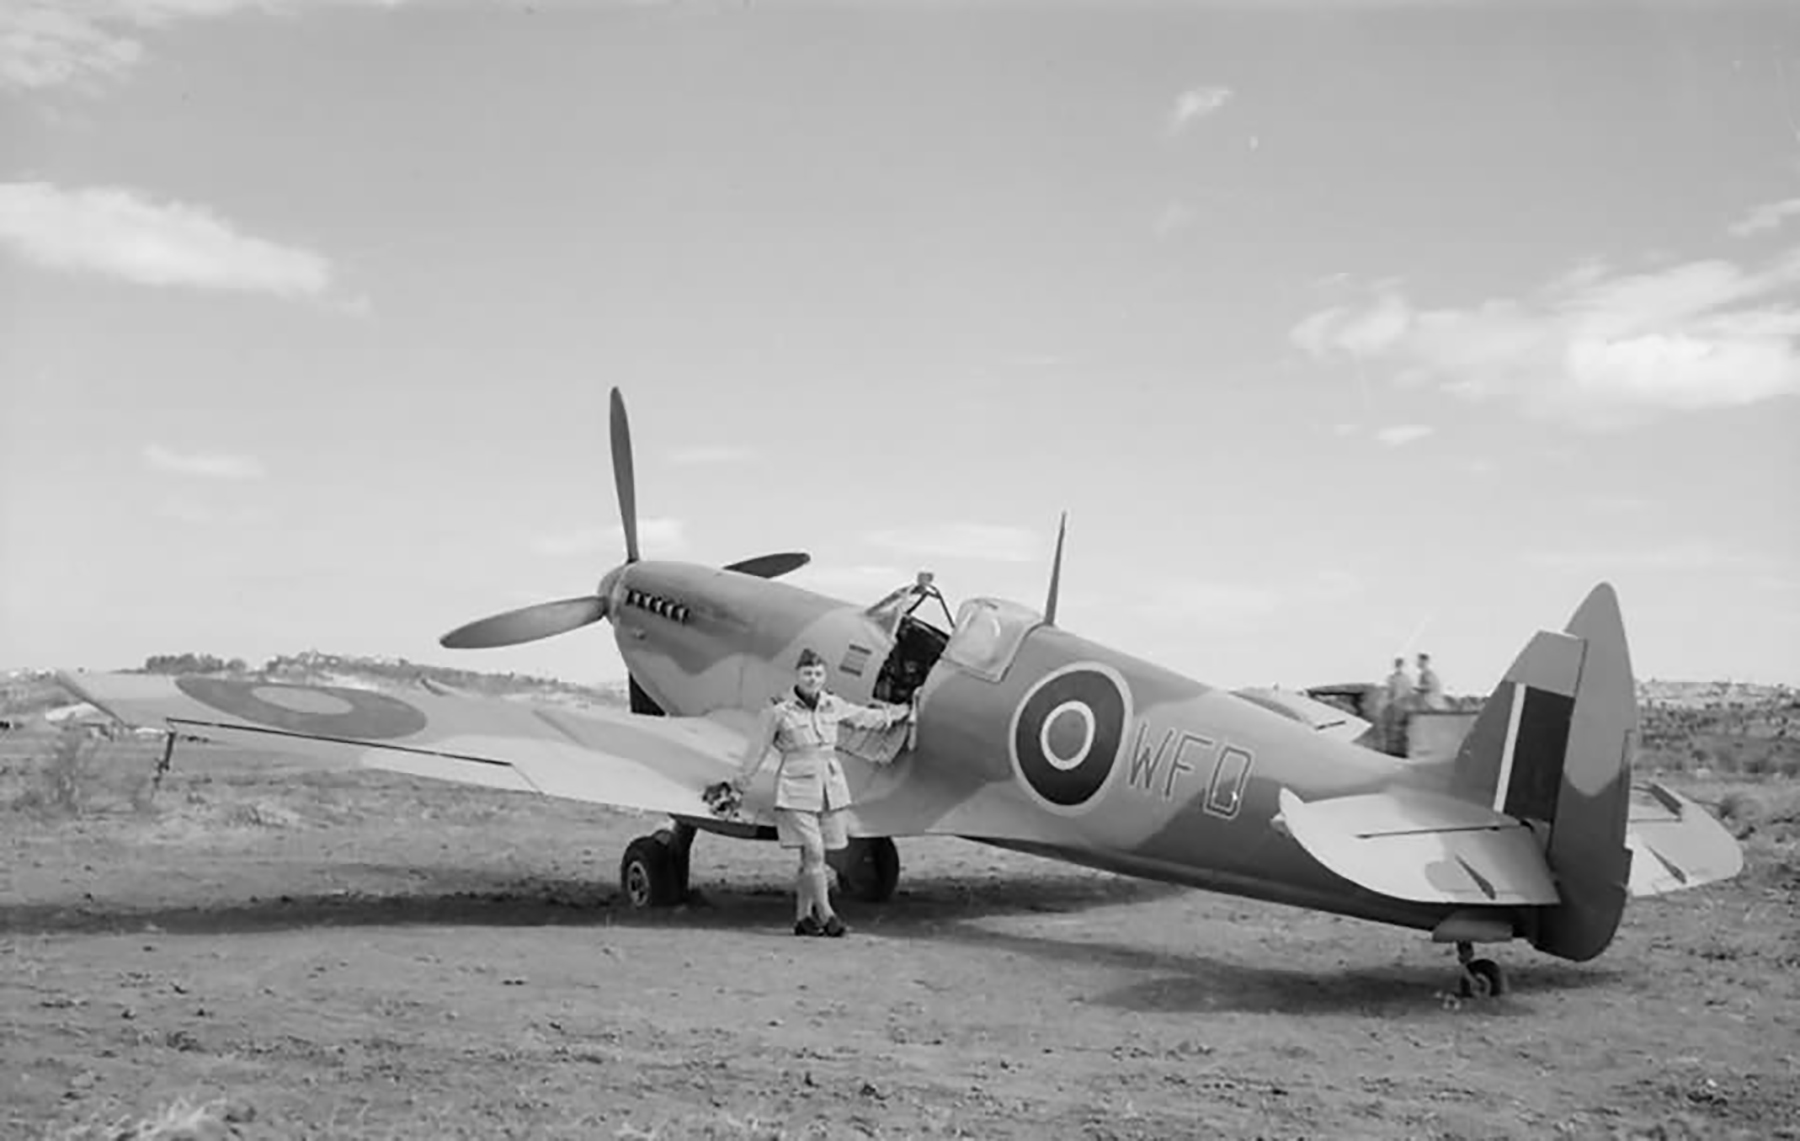 Spitfire LFVIII WFD JF814 Air Vice Marshal William Forster Dickson personal ac Italy 1943 01